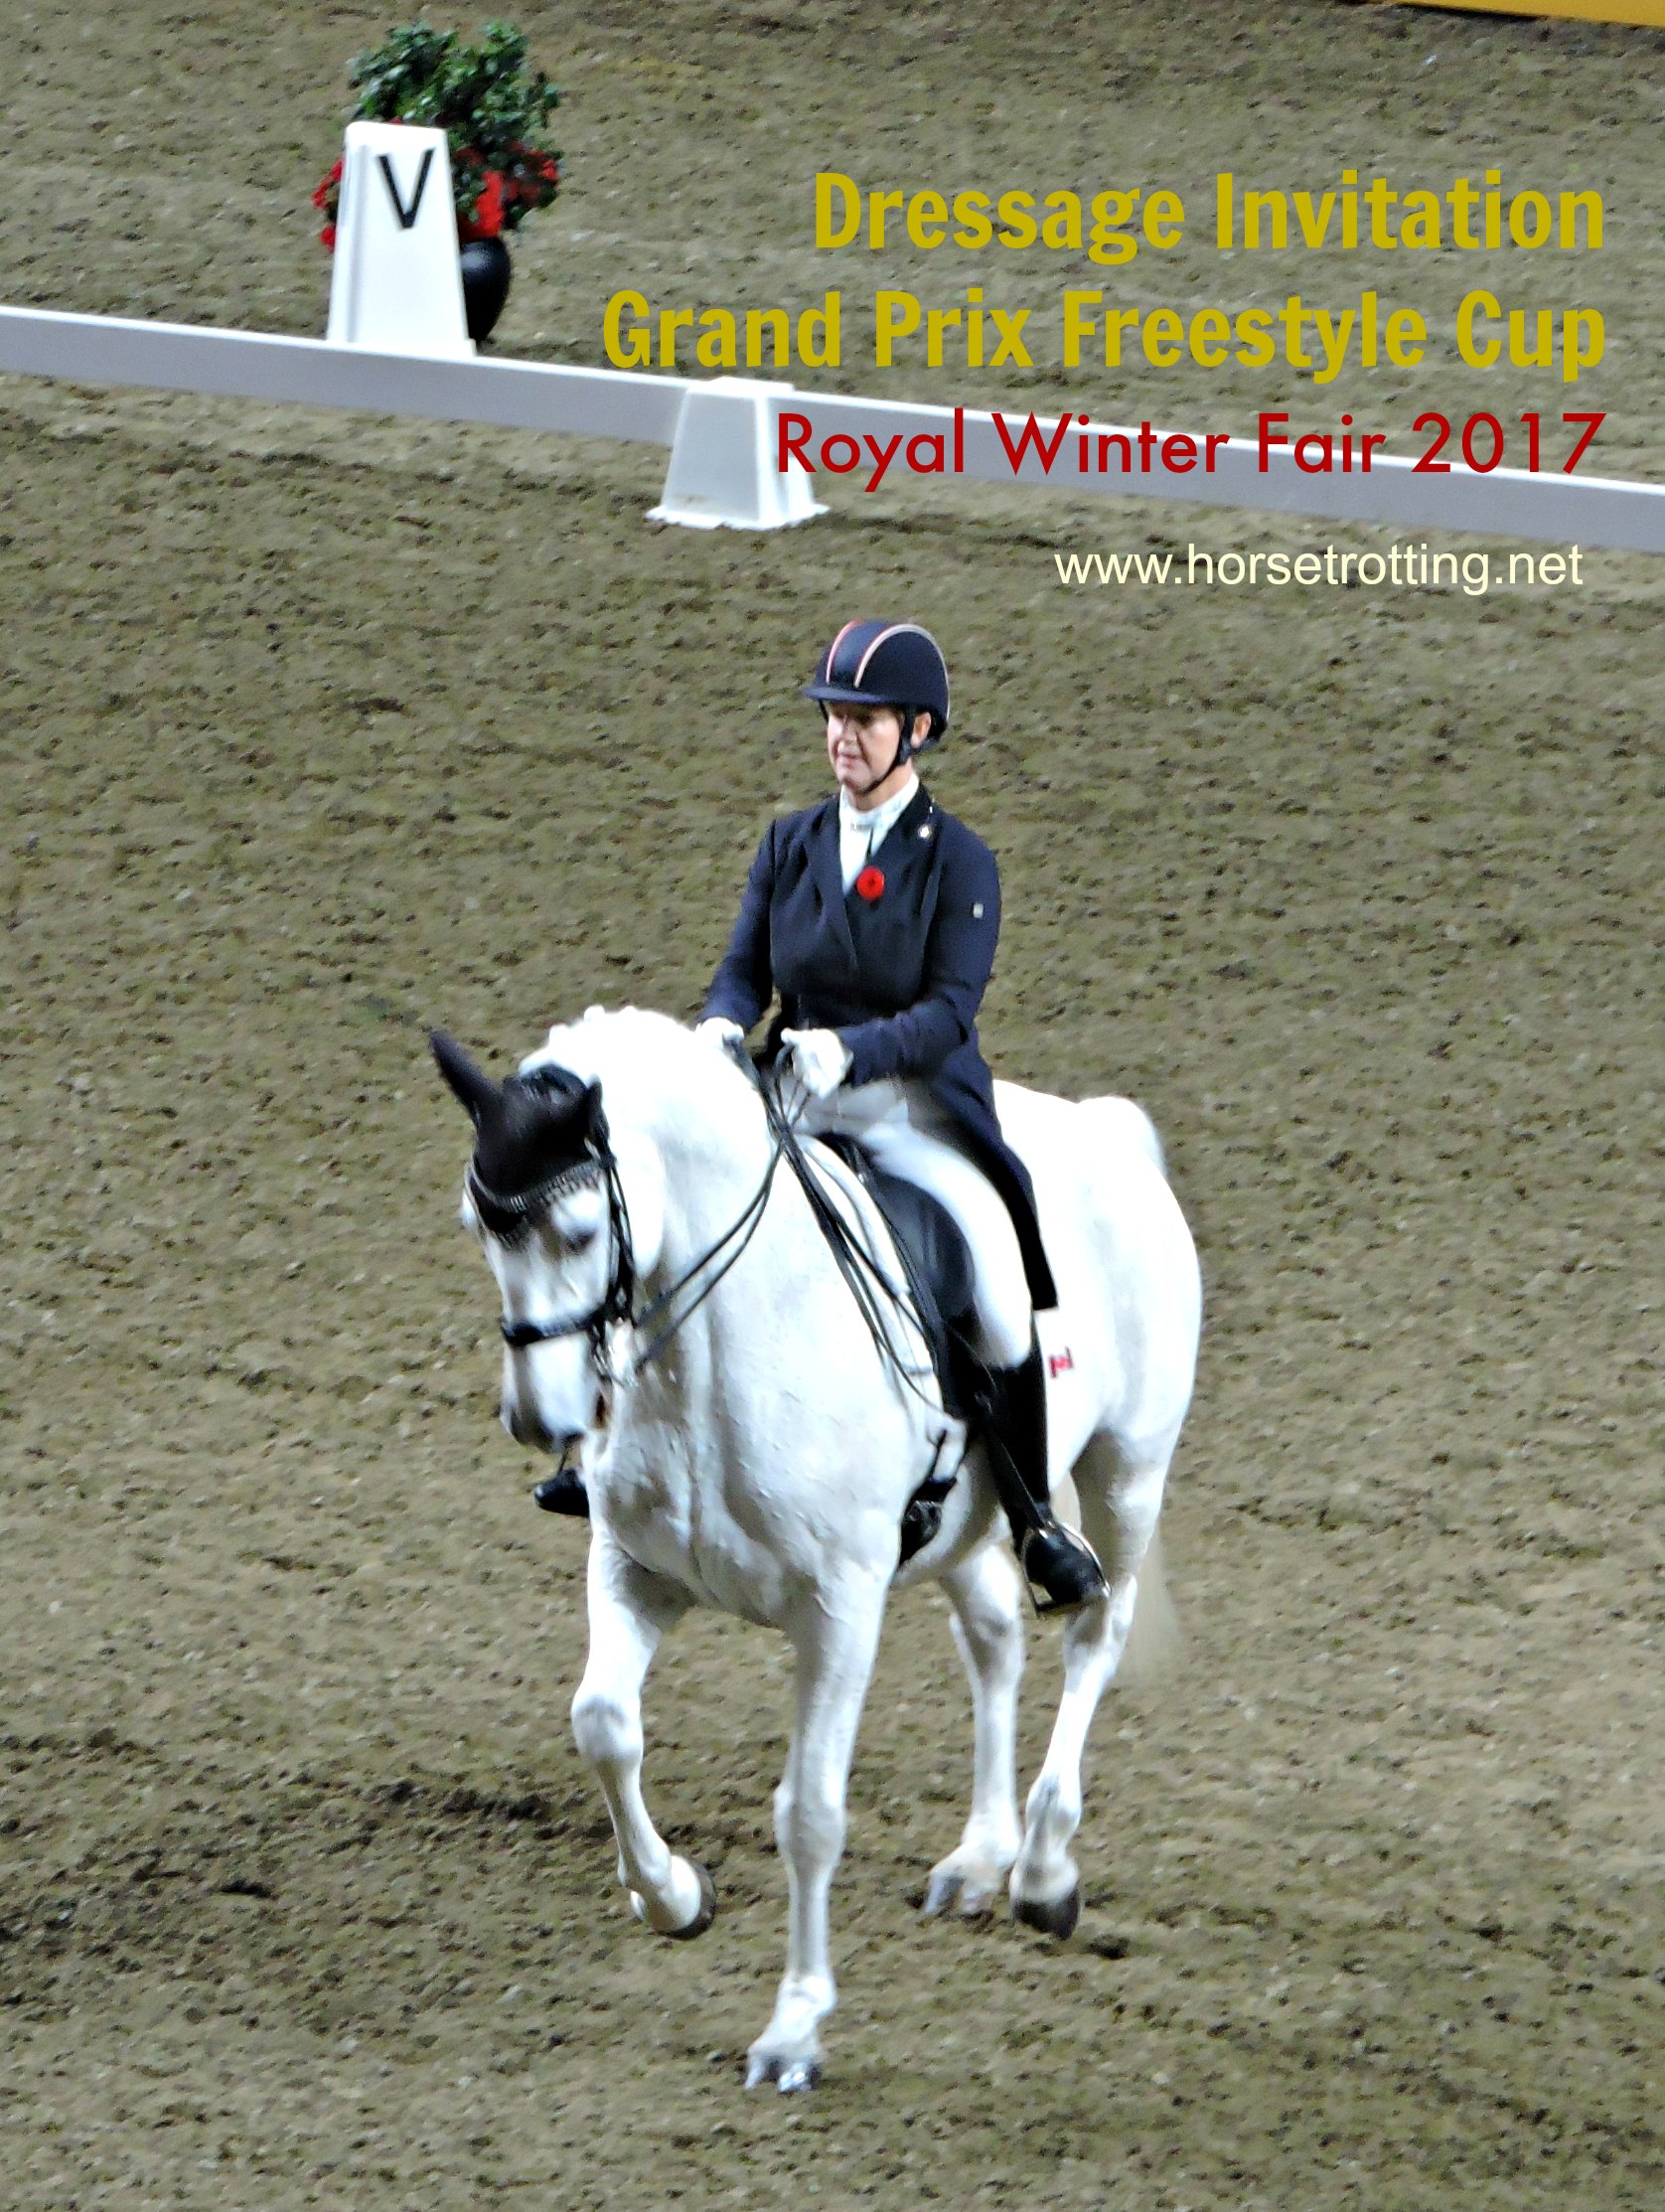 Travel, Toronto (Part III): Dressage at the Royal Winter Fair 2017